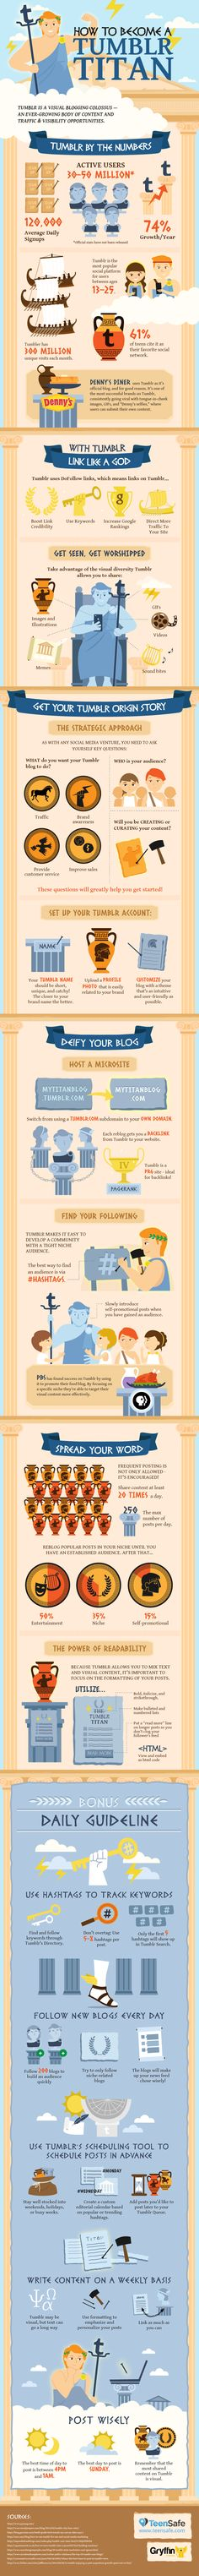 How to become a Tumblr titan. #infographic #design (View more at www.aldenchong.com)